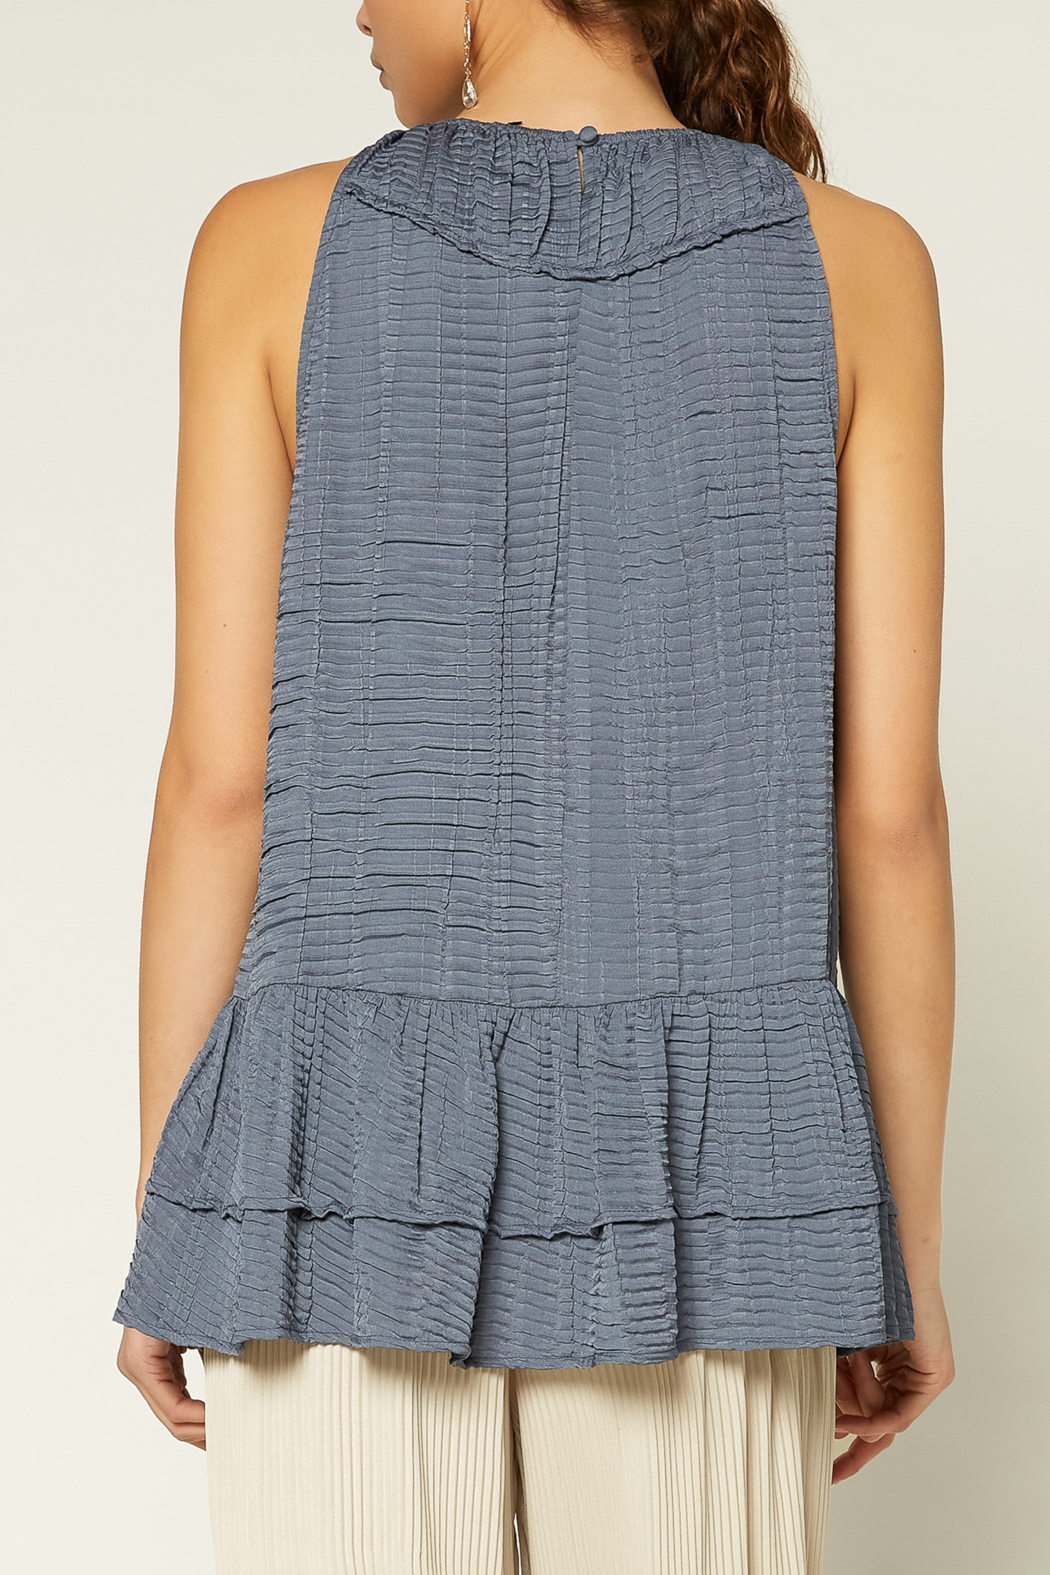 Current Air  Shirred Round Neck Halter Top - Front Full Image